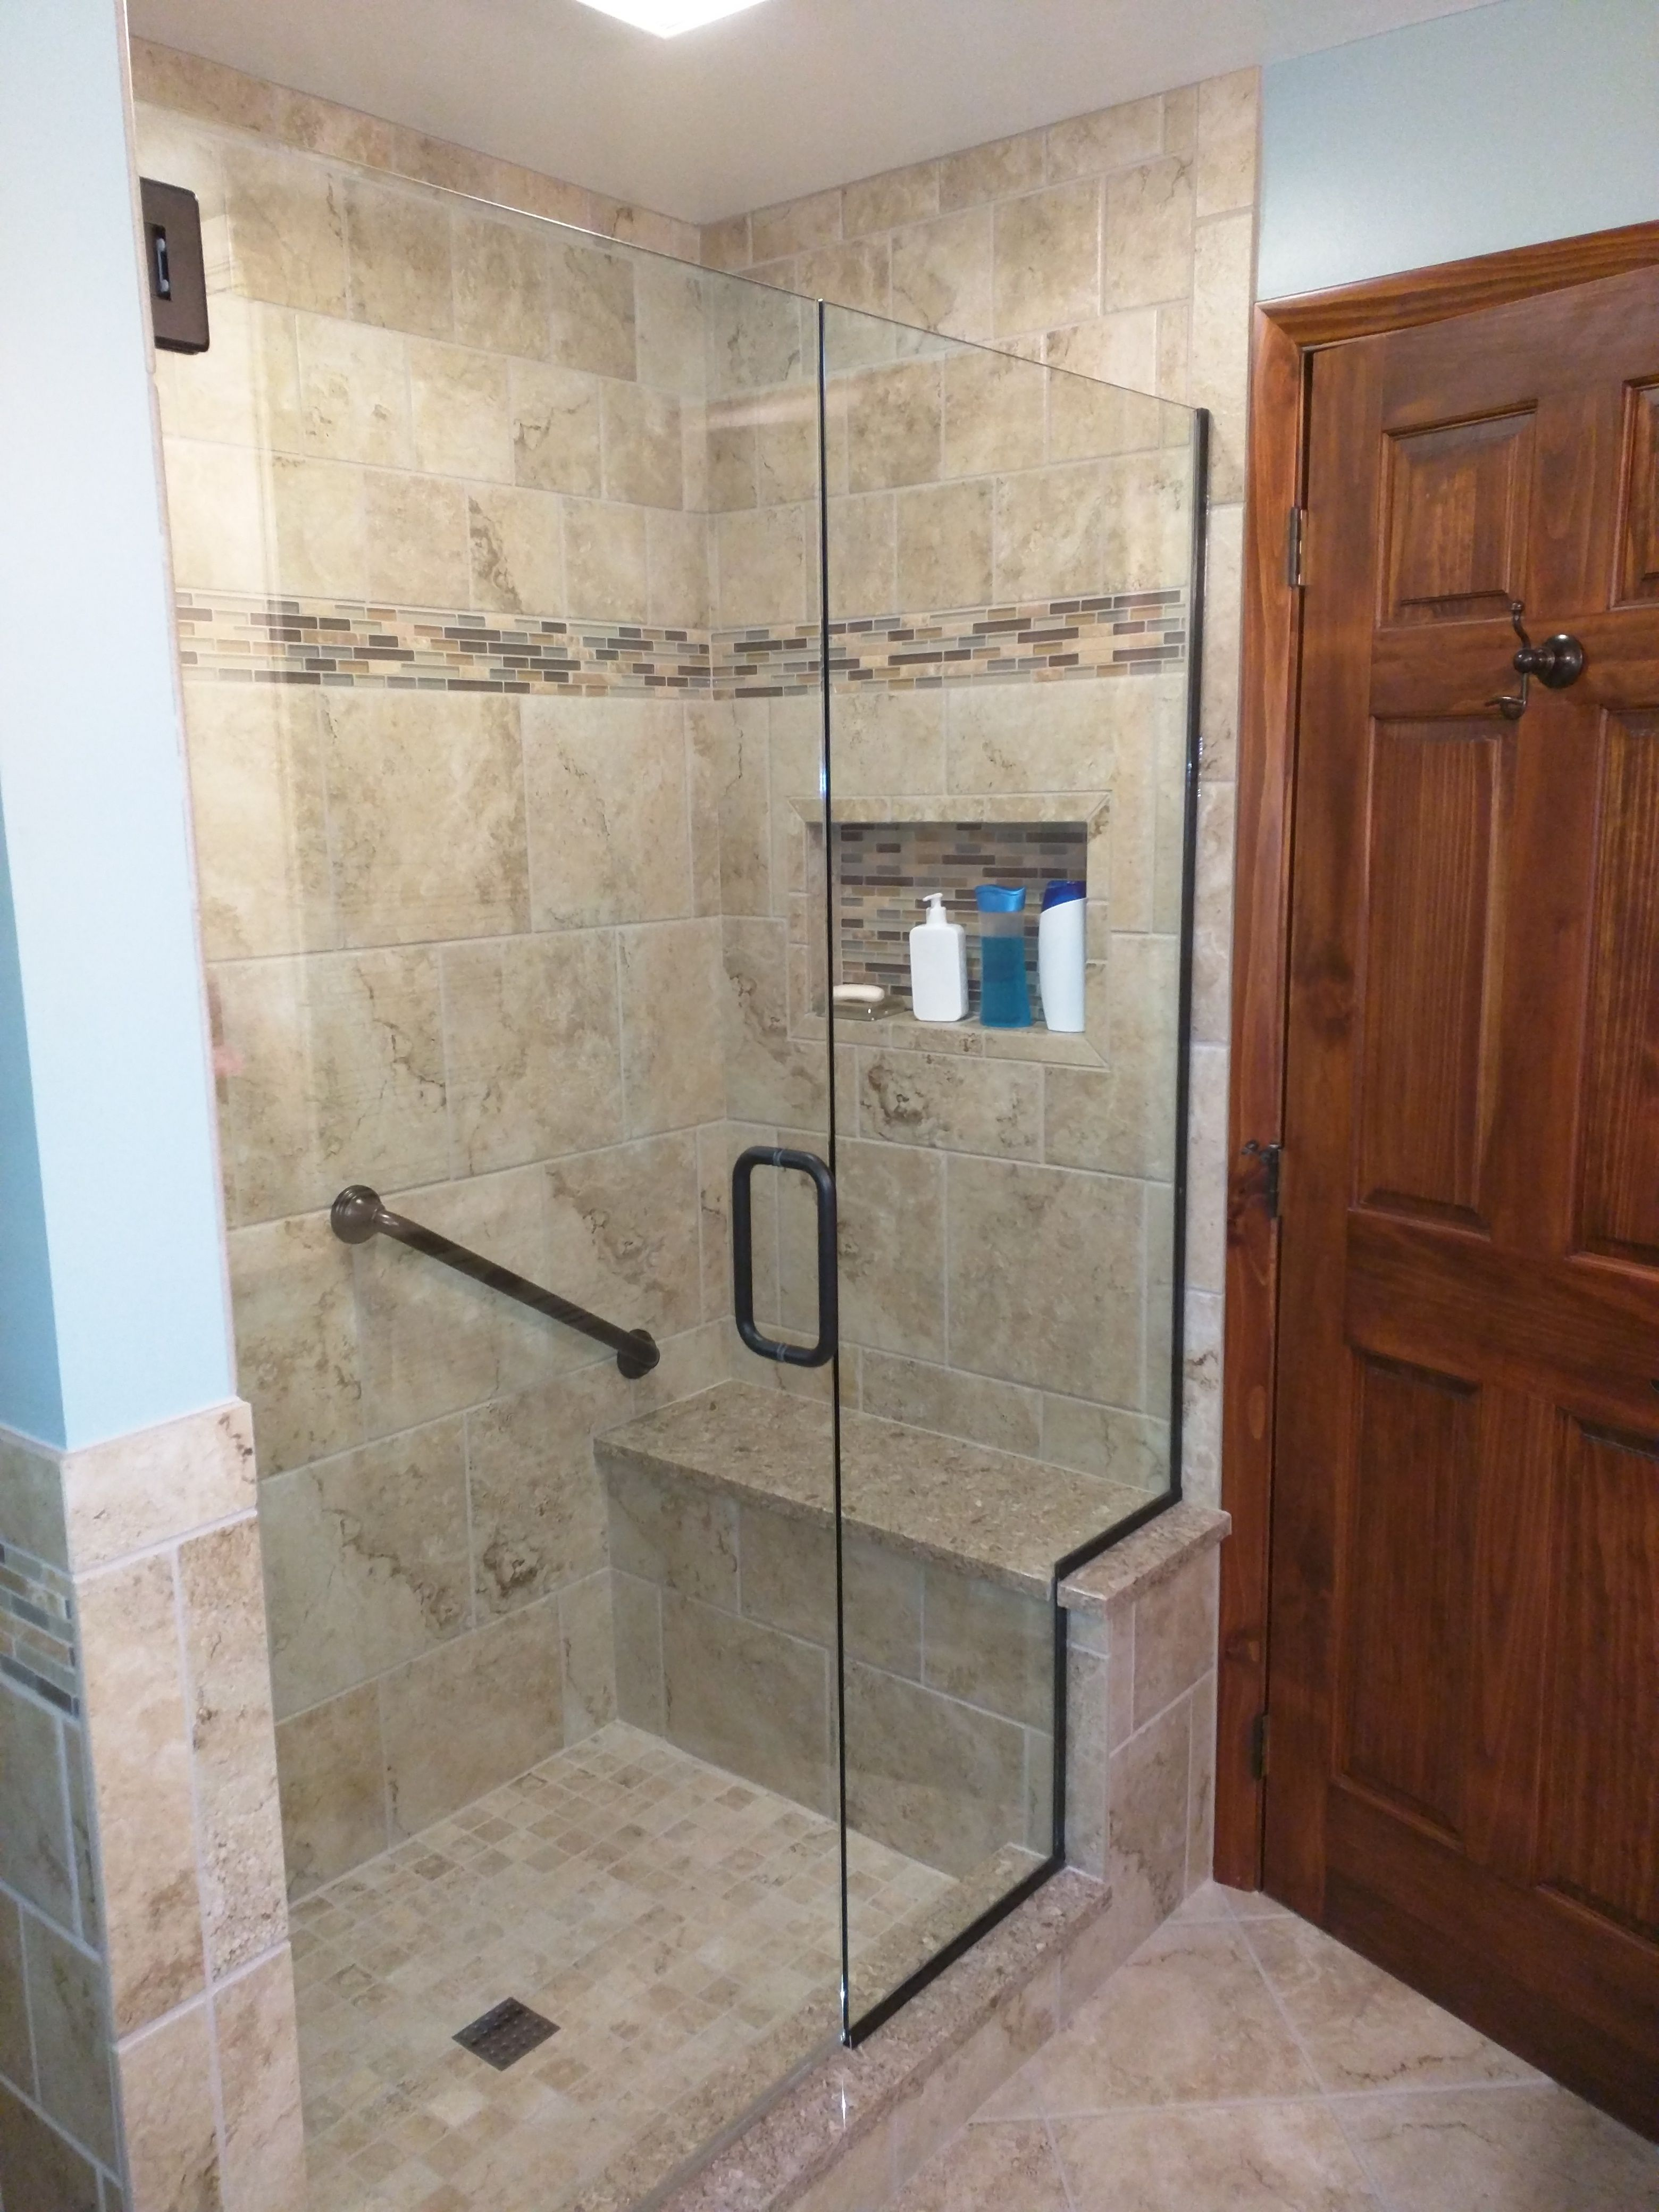 Tile Shower With Bench Seat In Cambria Quartz Tiled Wall Niche